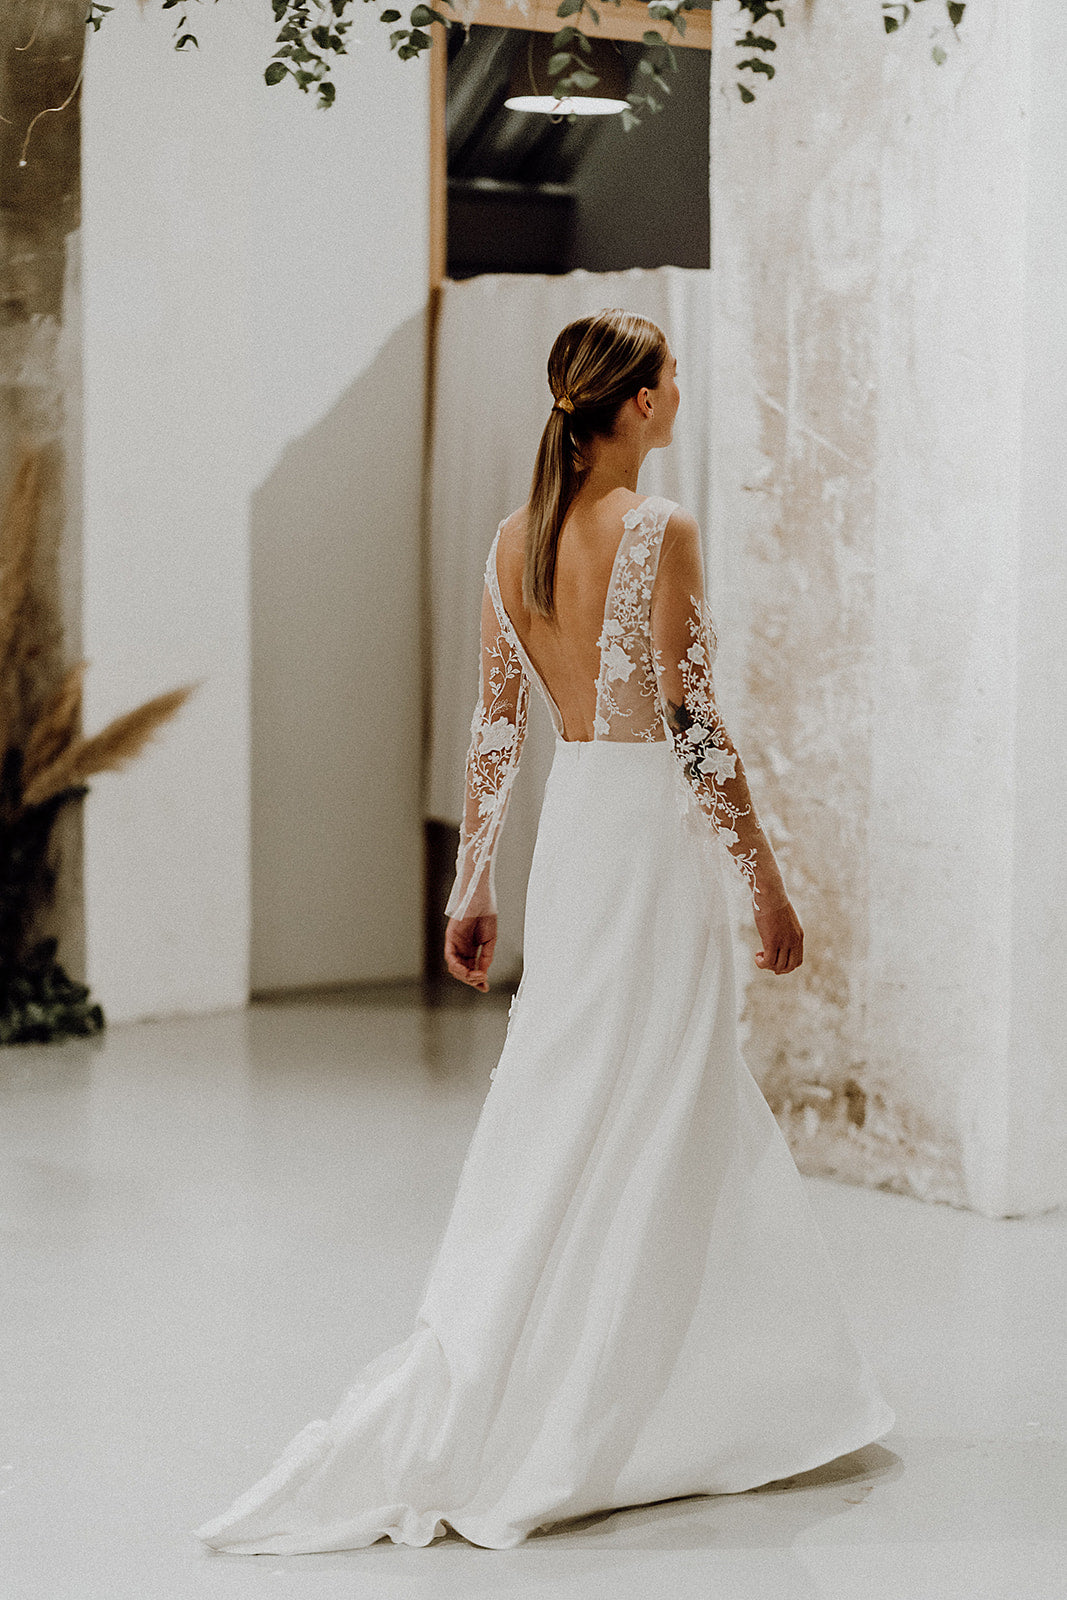 Elise Martimort wedding dresses Paris